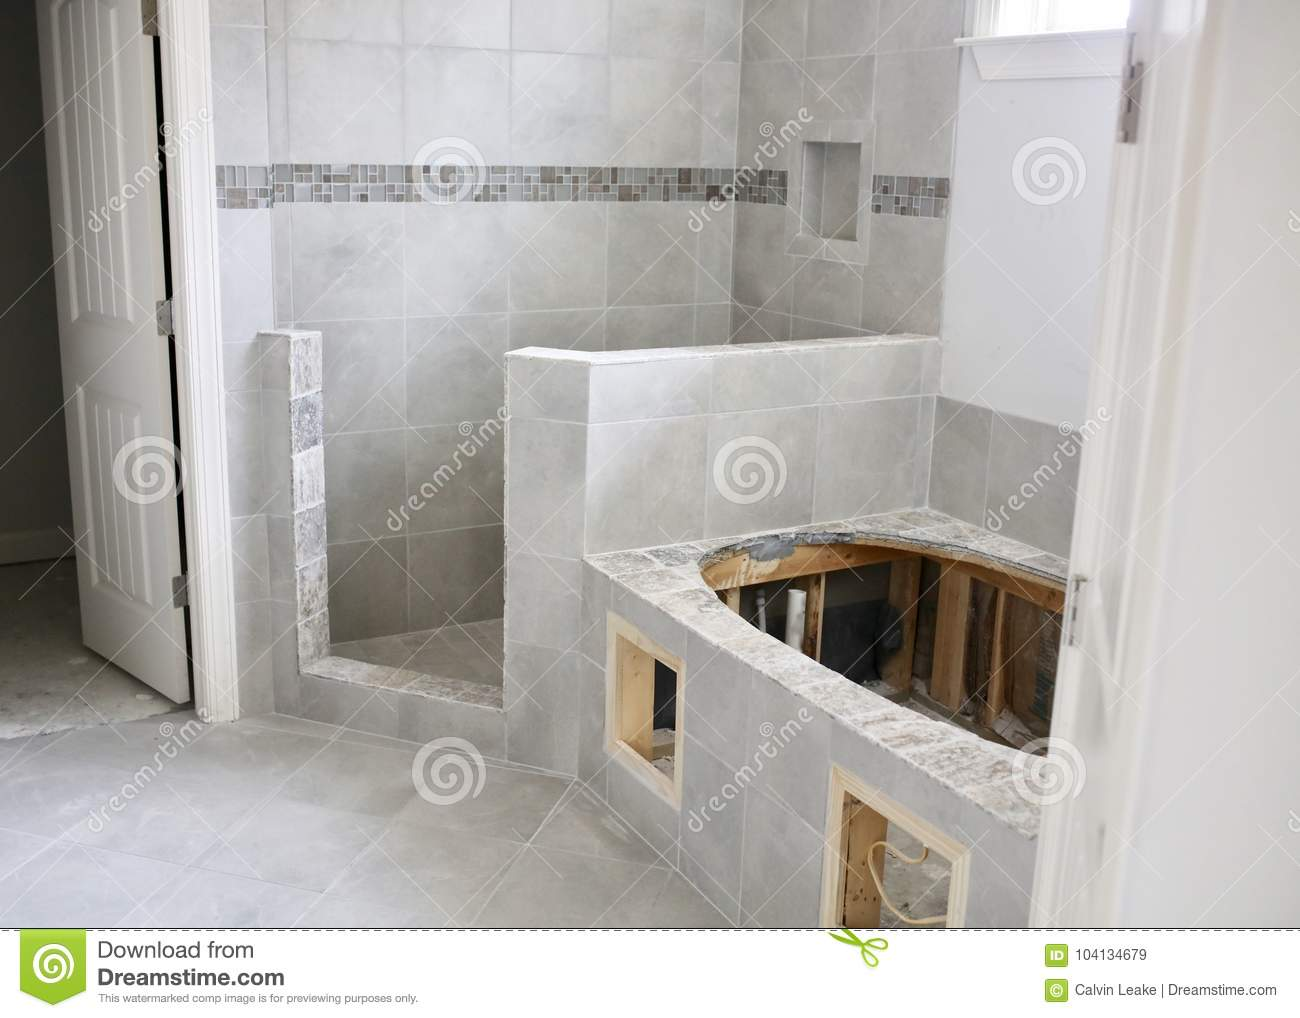 Shower And Tub Tile Remodel Project Stock Image - Image of colors ...